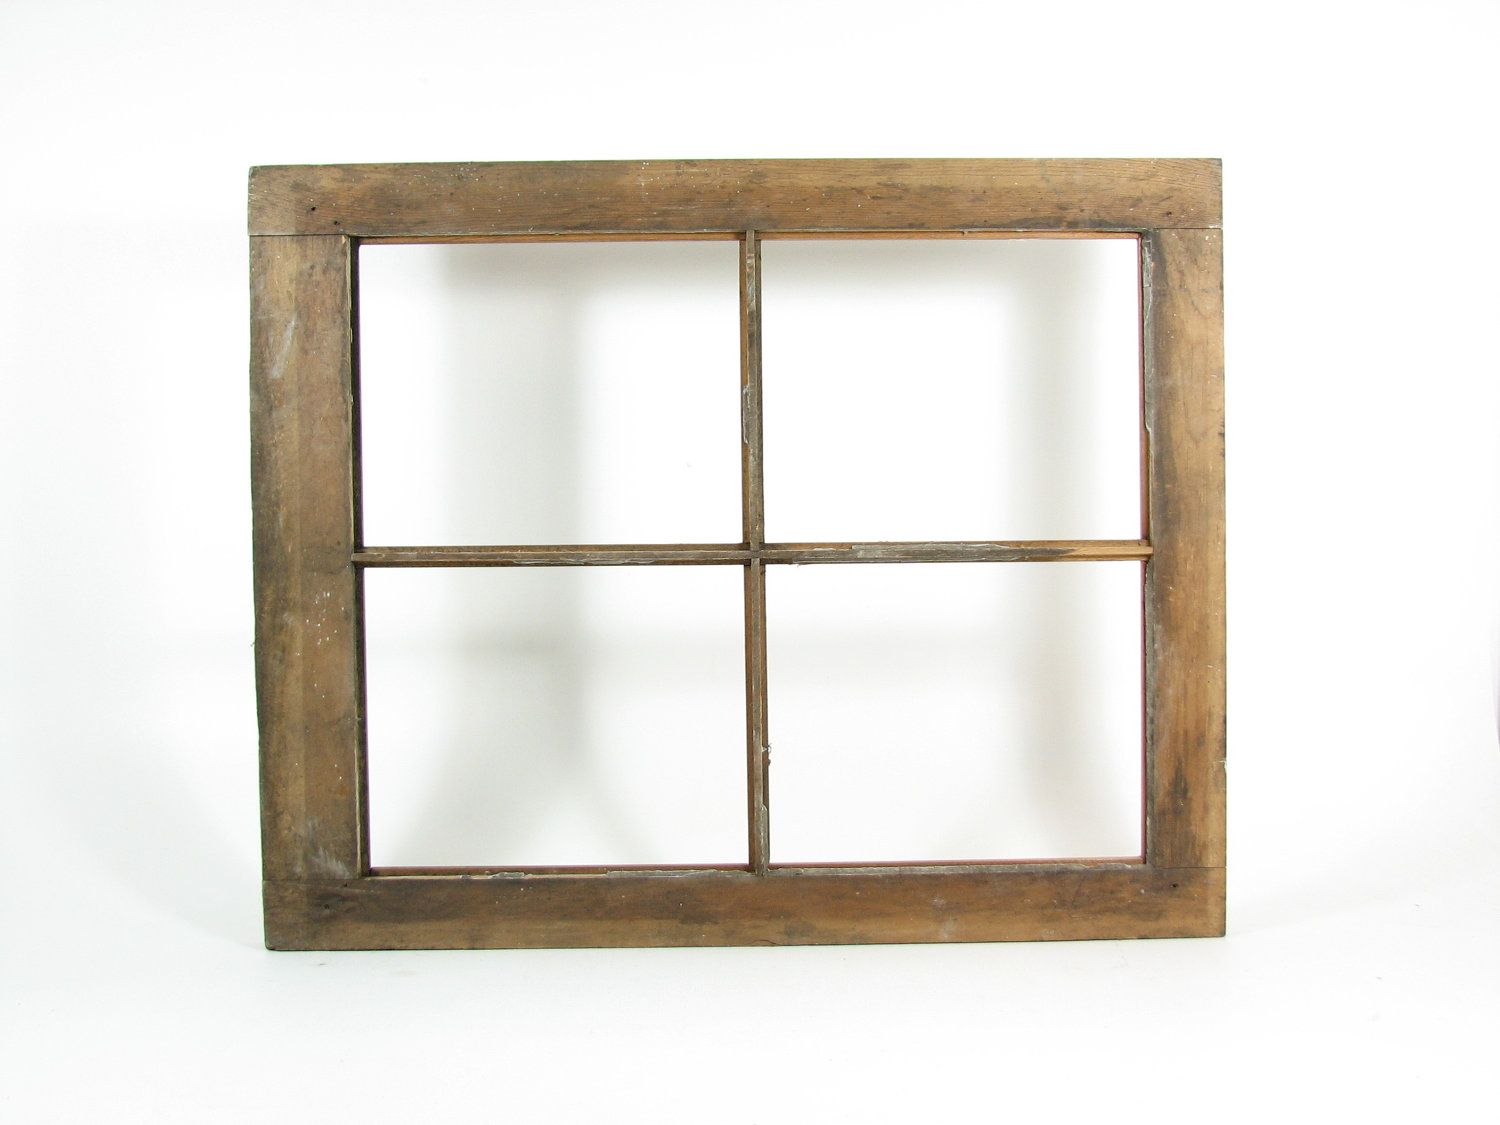 vintage wood window frame 4 pane 8x10 without glass